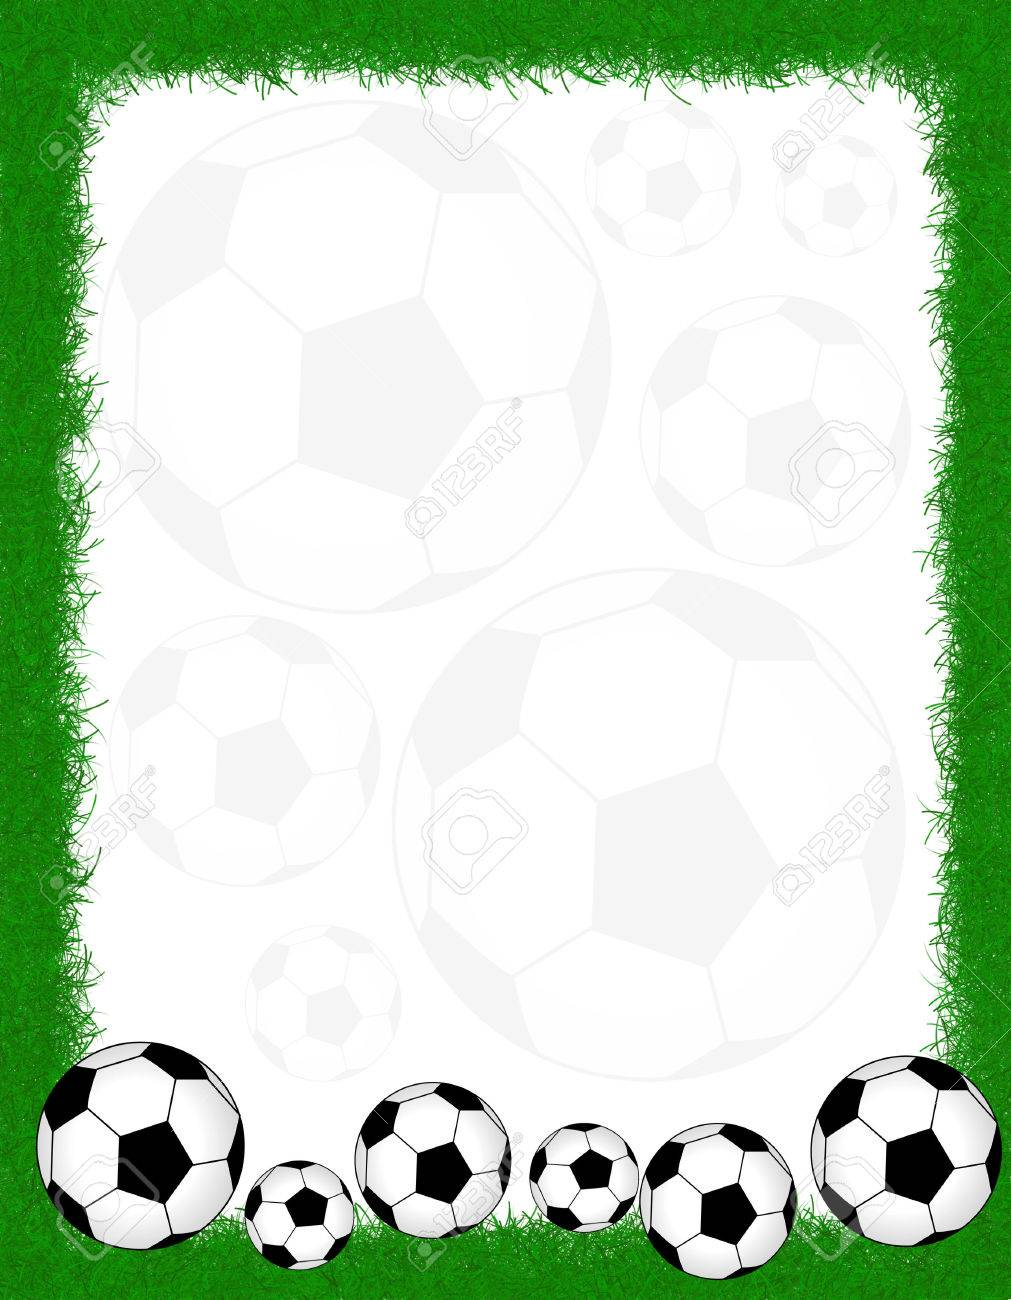 Soccer Balls On Beautiful Green Grass Frame. Stock Photo, Picture ...